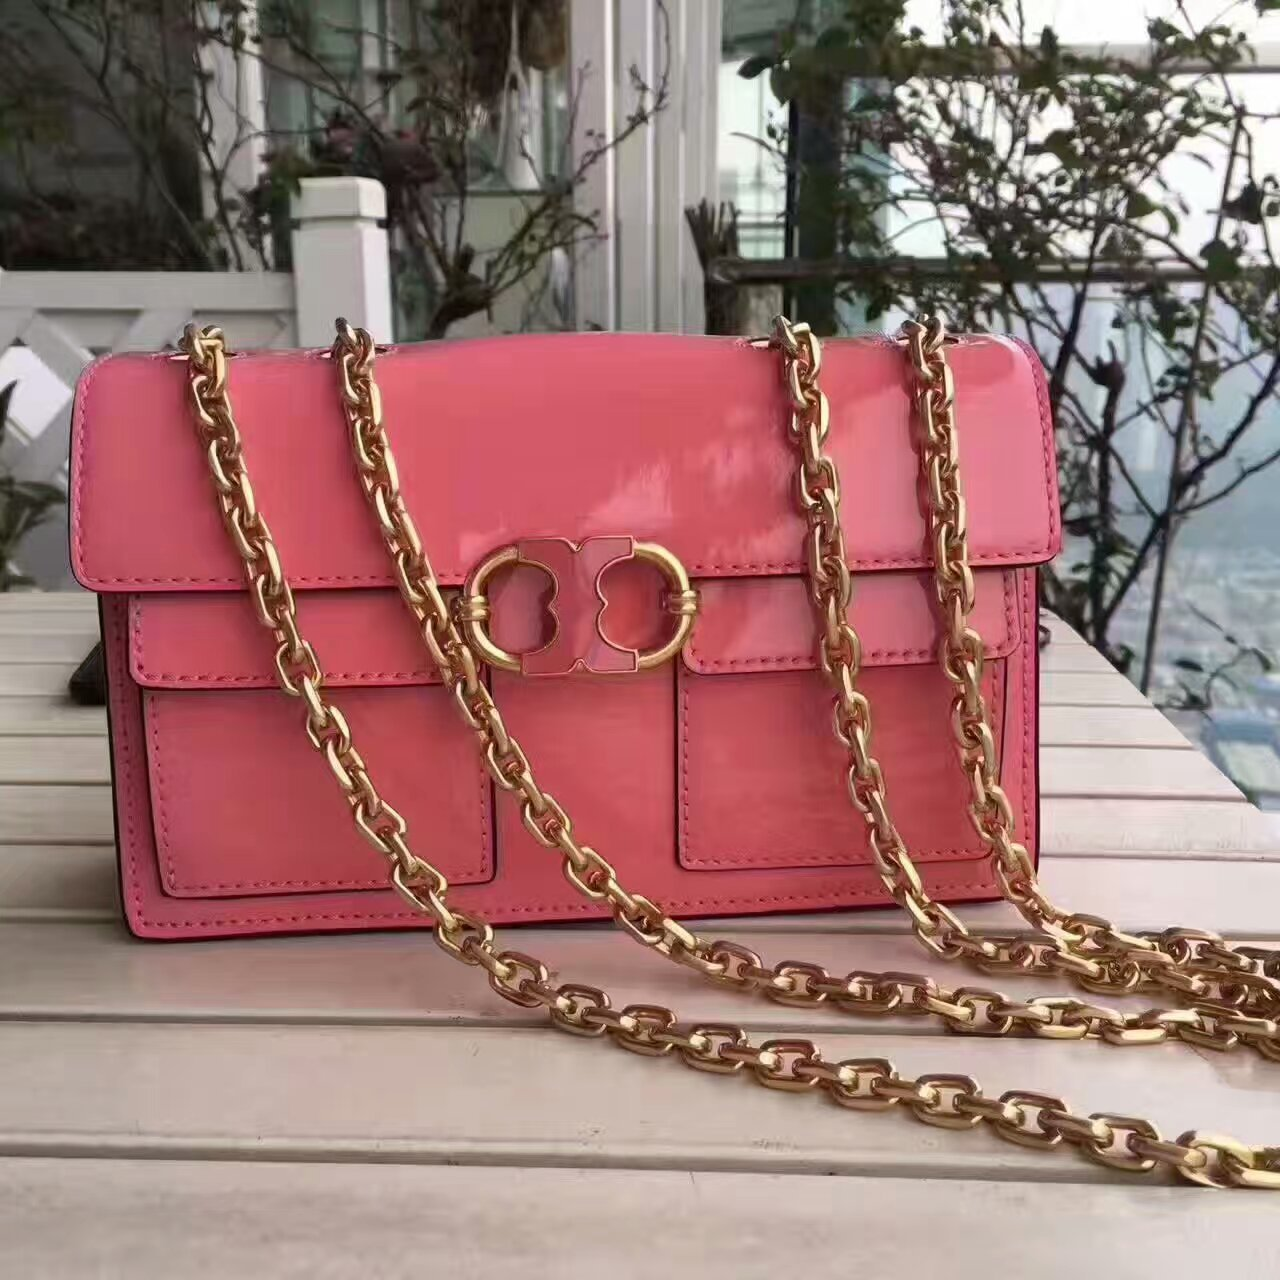 5014112e110 Mmexport1493645158845. Mmexport1493645158845. Previous. New Tory Burch  Gemini Link Patent Chain Shoulder Bag